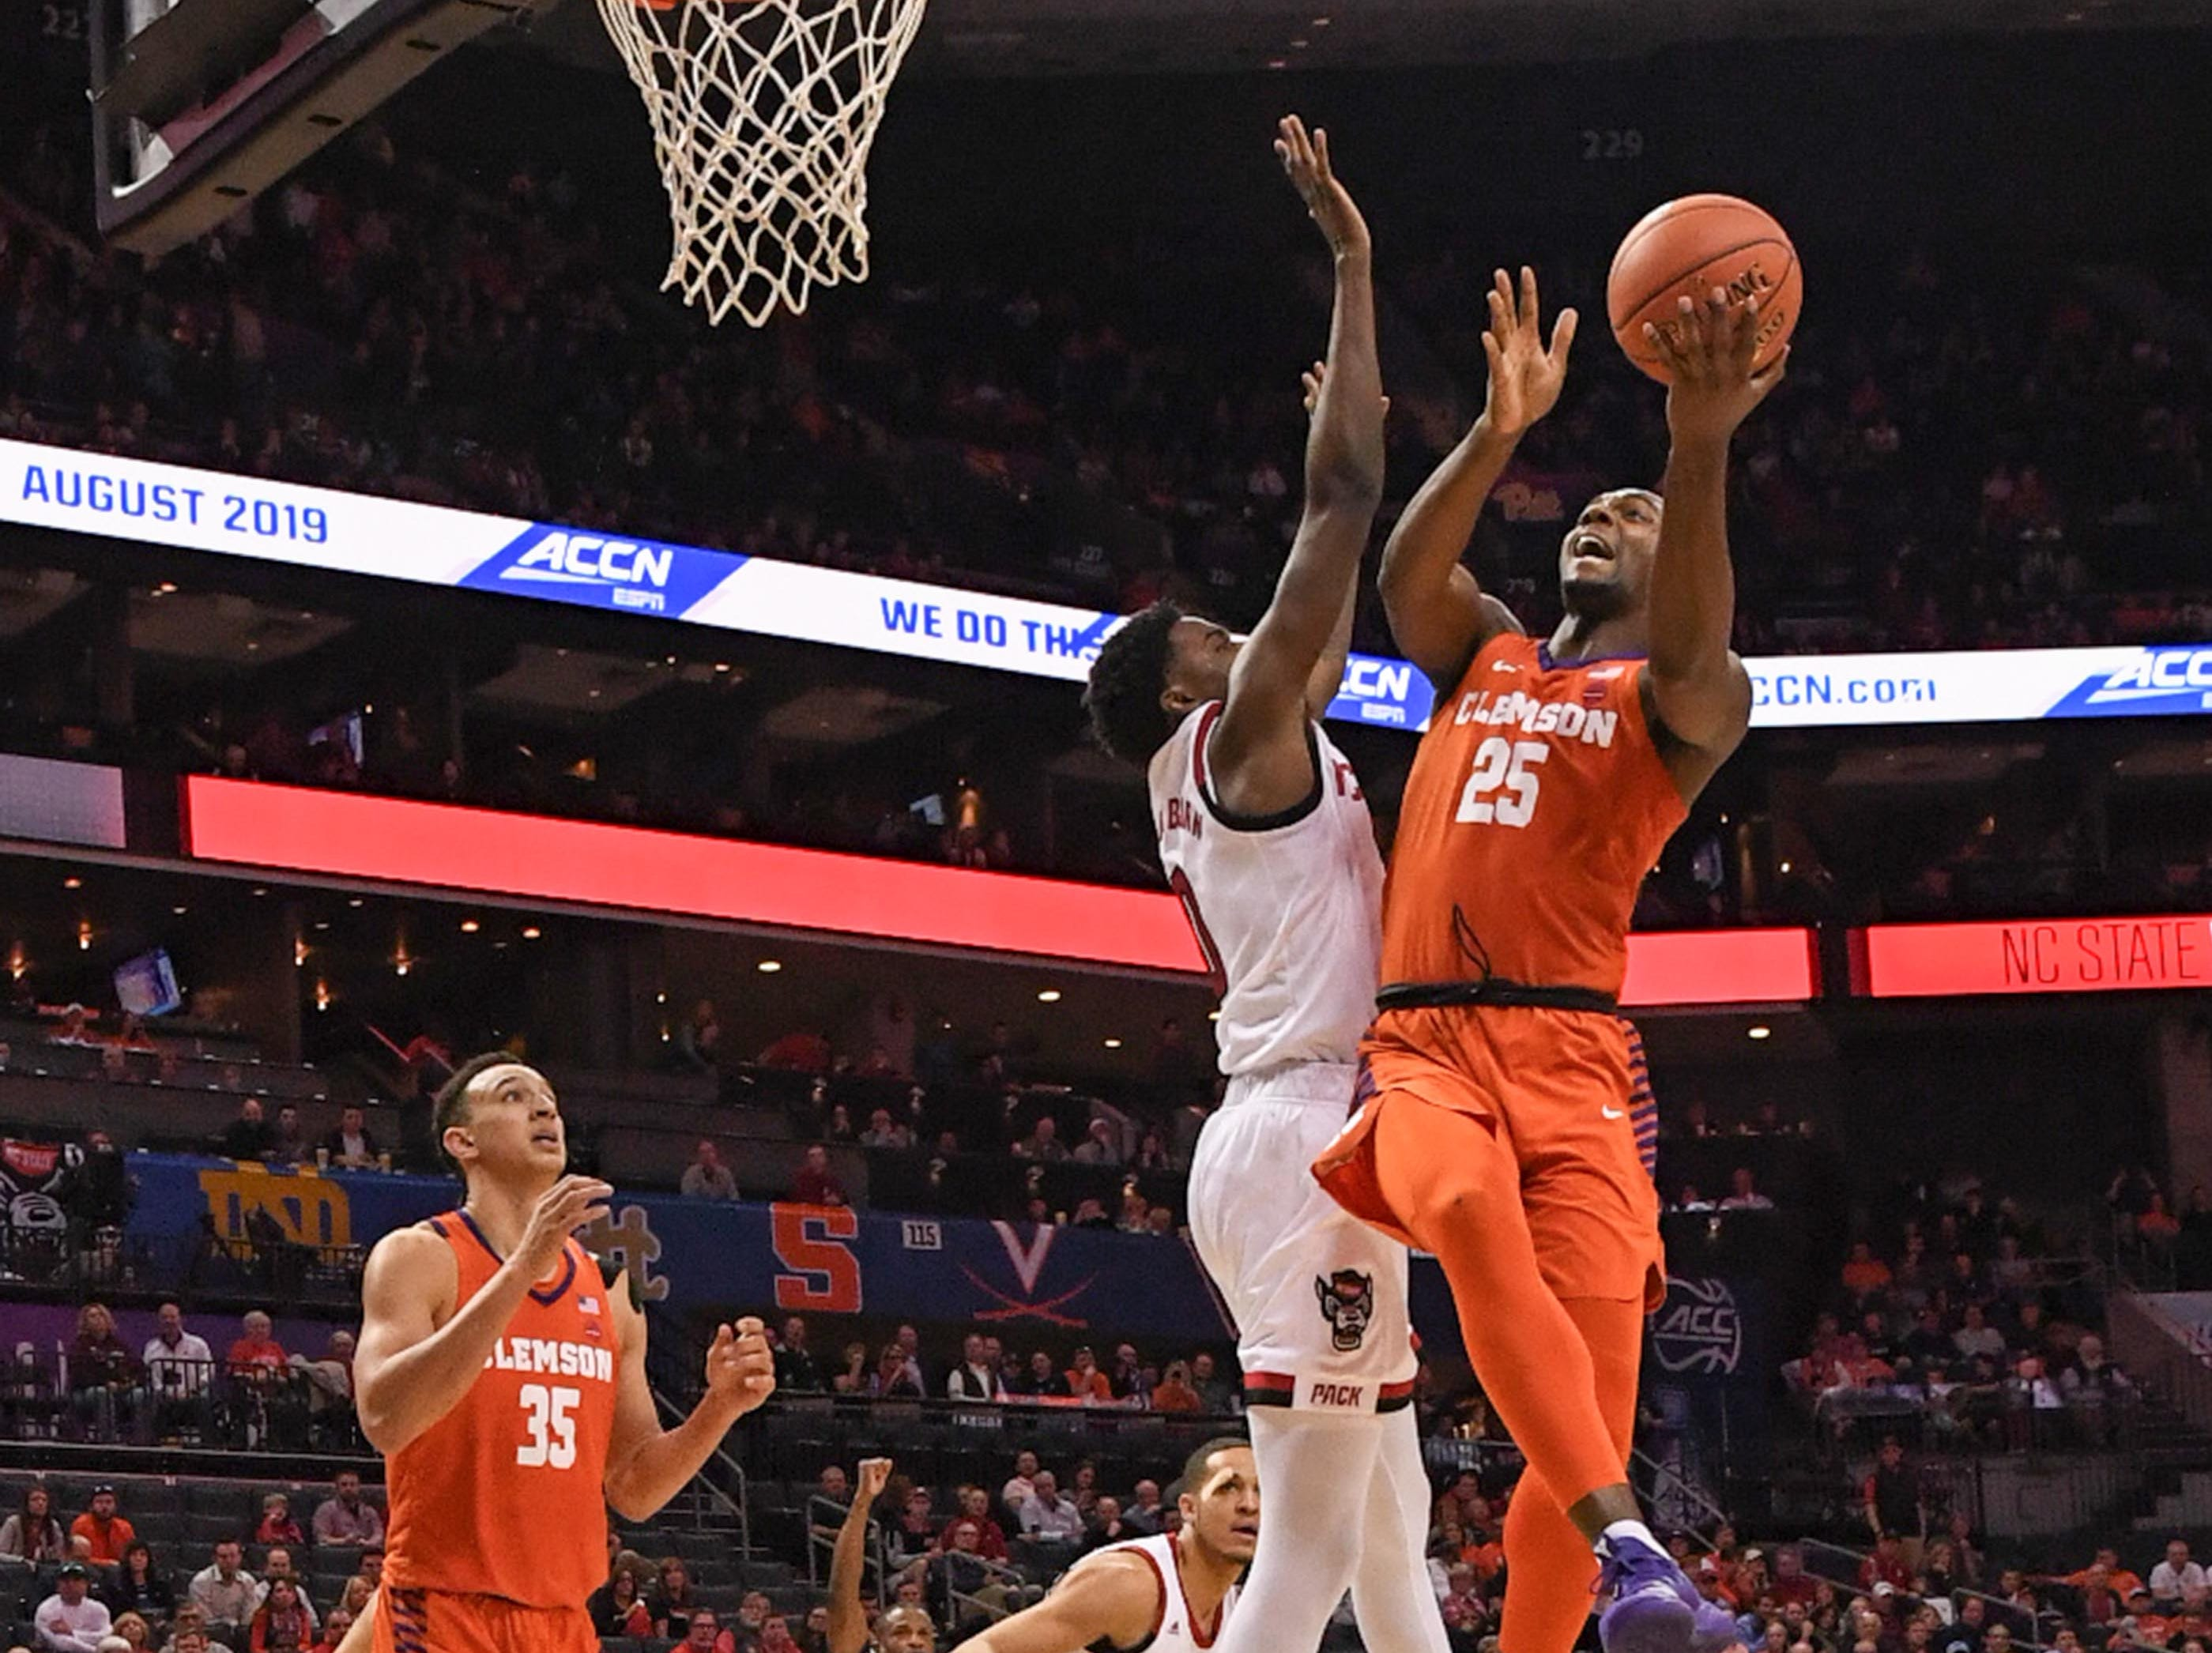 Clemson forward Aamir Simms (25) shoots against N.C. State during the second half at the Spectrum Center in Charlotte, N.C. Tuesday, March 12, 2019.